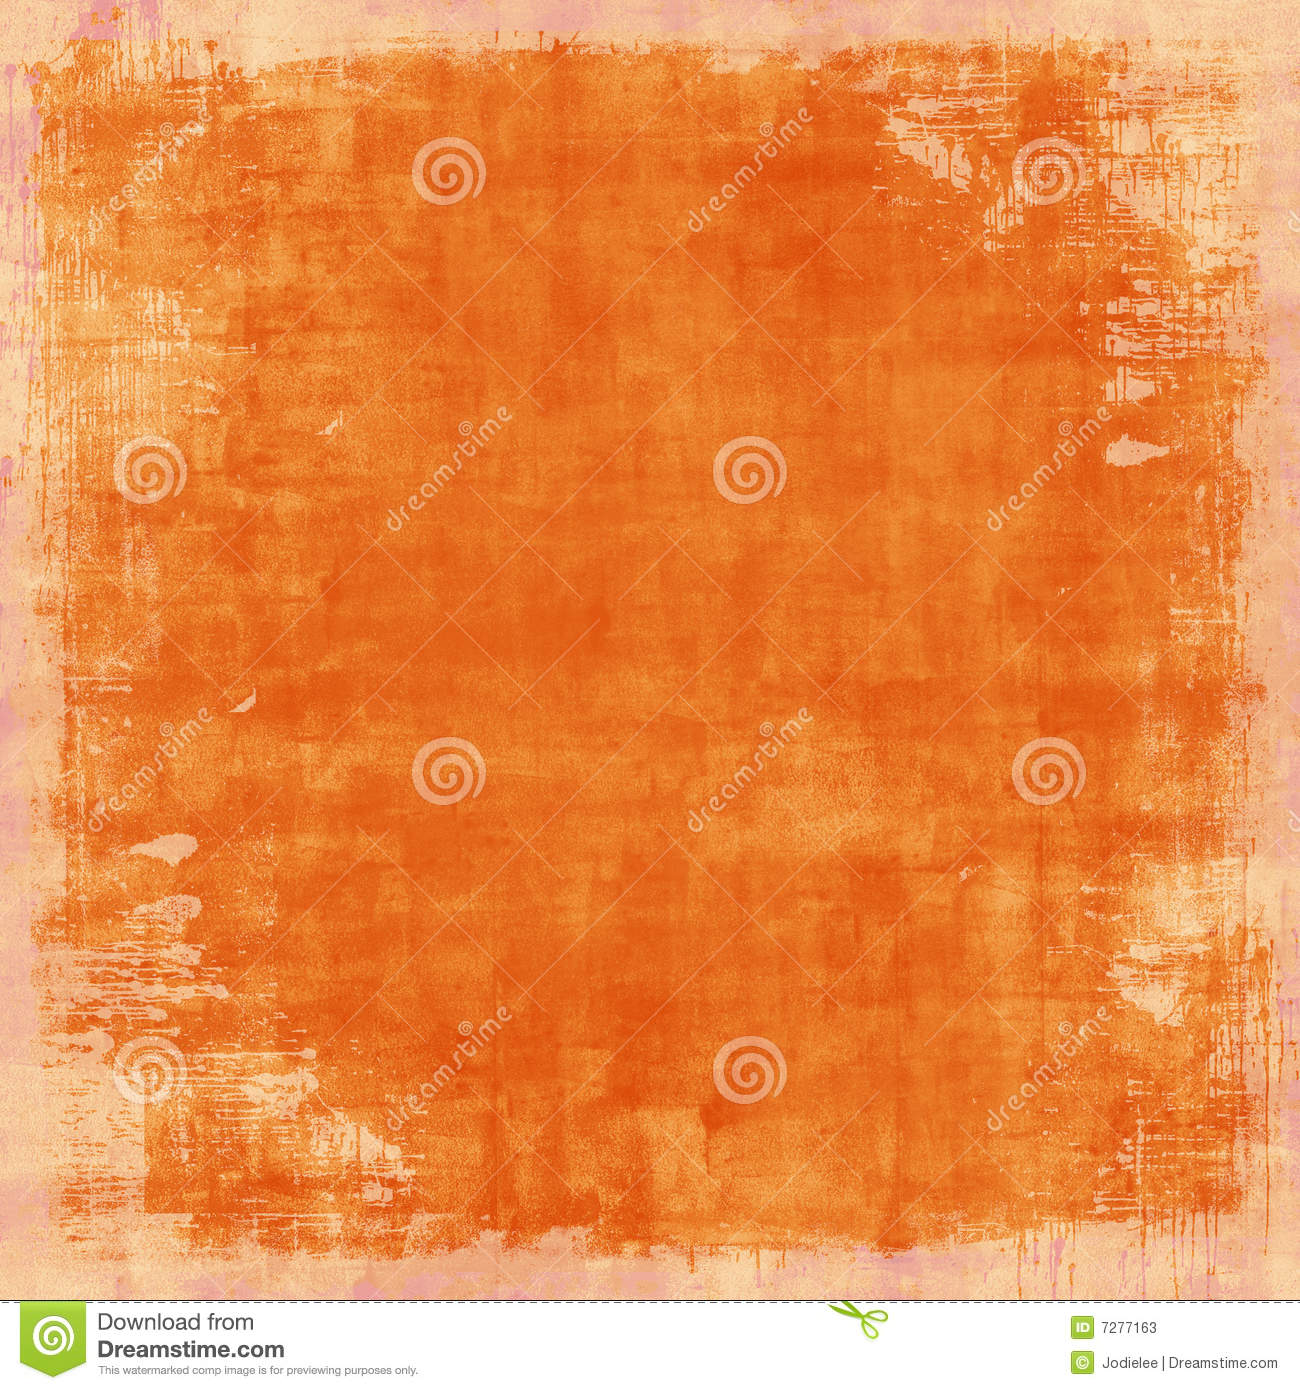 Grungy Distressed Orange Vintage Background Stock Photos ...